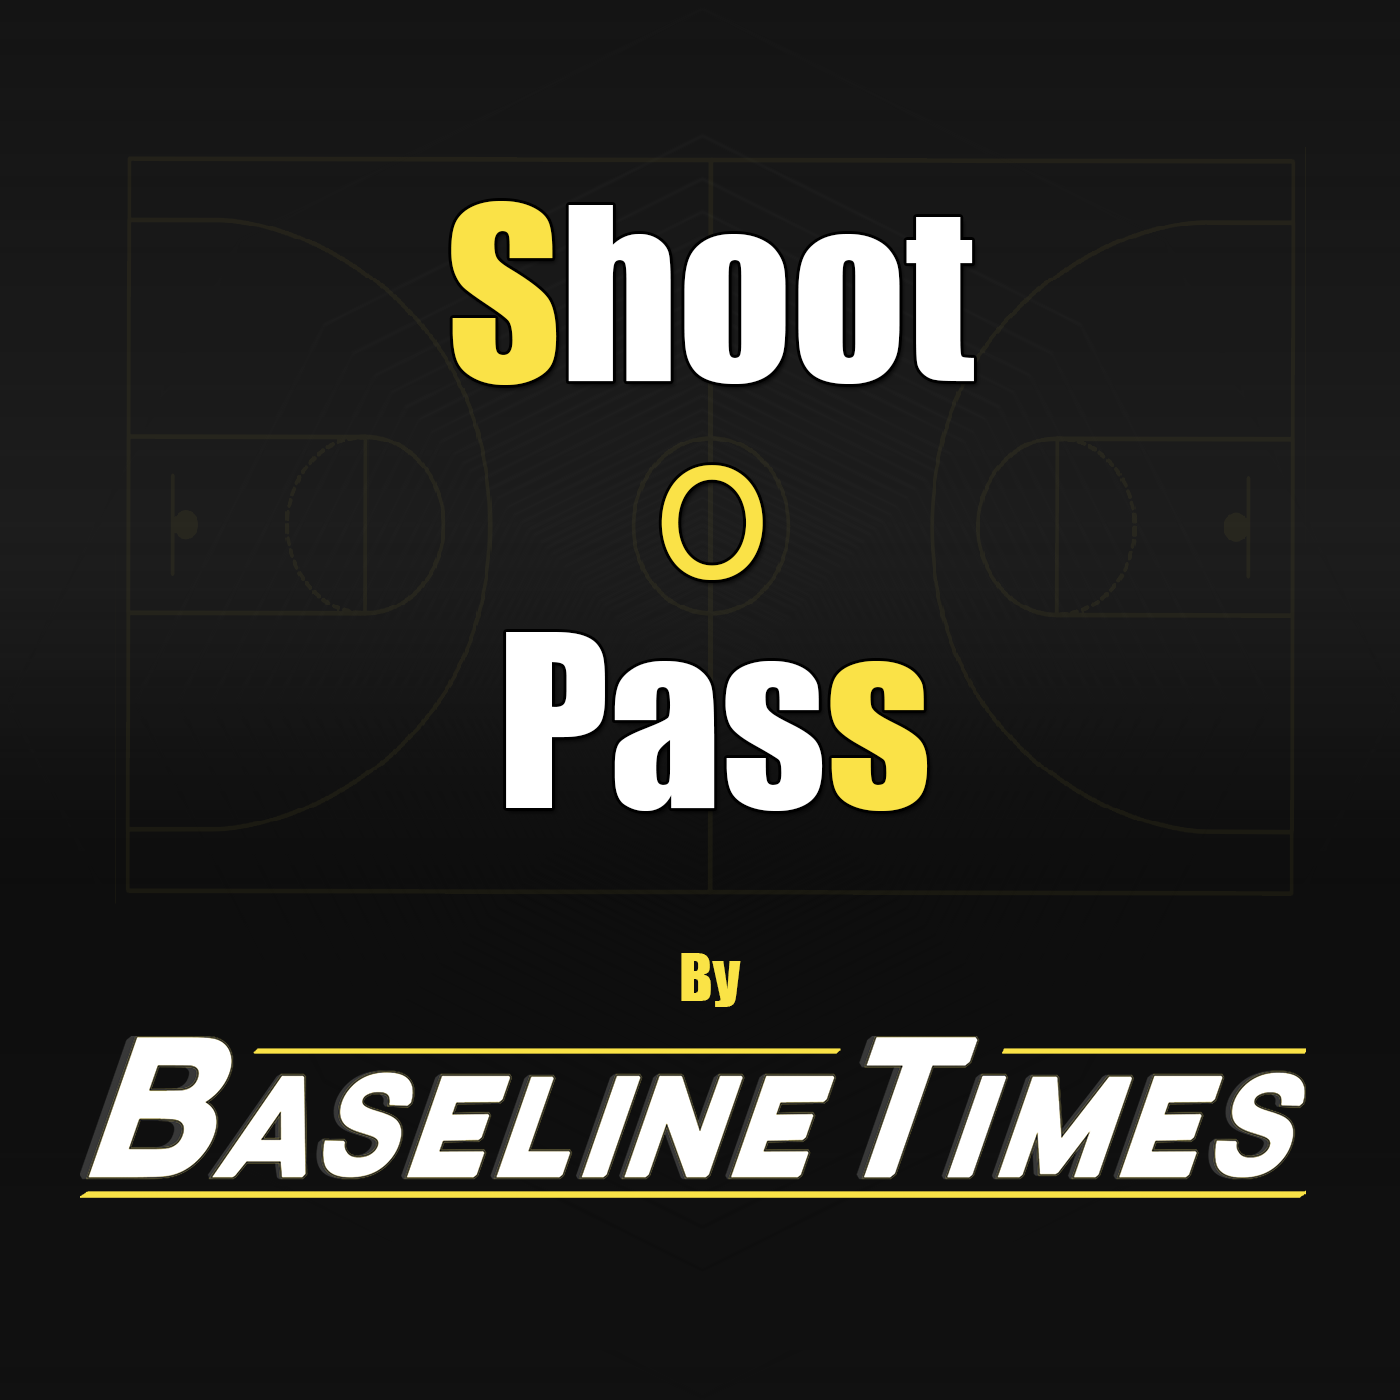 Shoot Or Pass Podcast - Episode 17: 2018 NBA Eastern Conference Preview - The guys are back! Chevy, DeMario, and Markus are back for the 2018-2019 NBA Season. In this episode, they start a preview of the Eastern Conference contenders, sleepers, and Rookies to watch for. Also, tune in to find out what is Markus' big prediction for the Toronto Raptors. DeMario serves up his hot take on which player in the East will contend for the MVP that is not a Celtic, Raptor, or 76er.